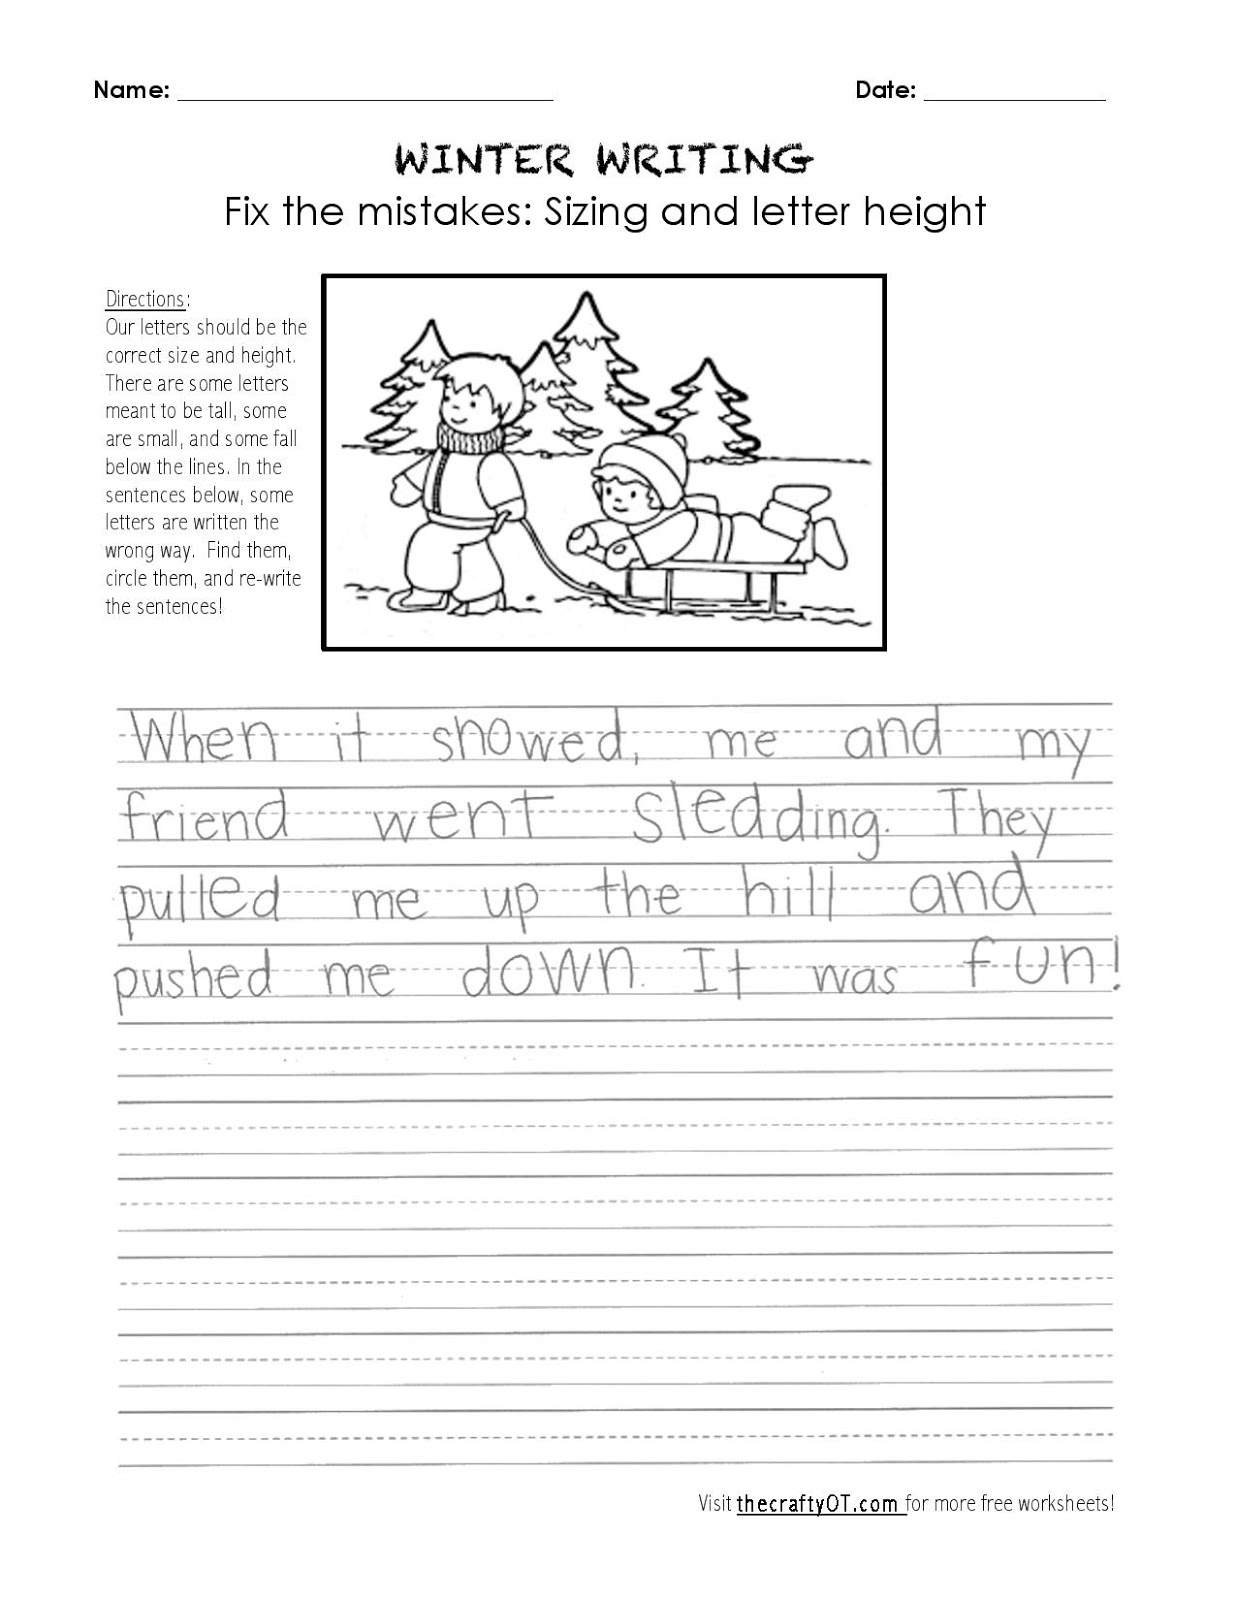 The Crafty Ot Winter Writing Fix The Mistakes